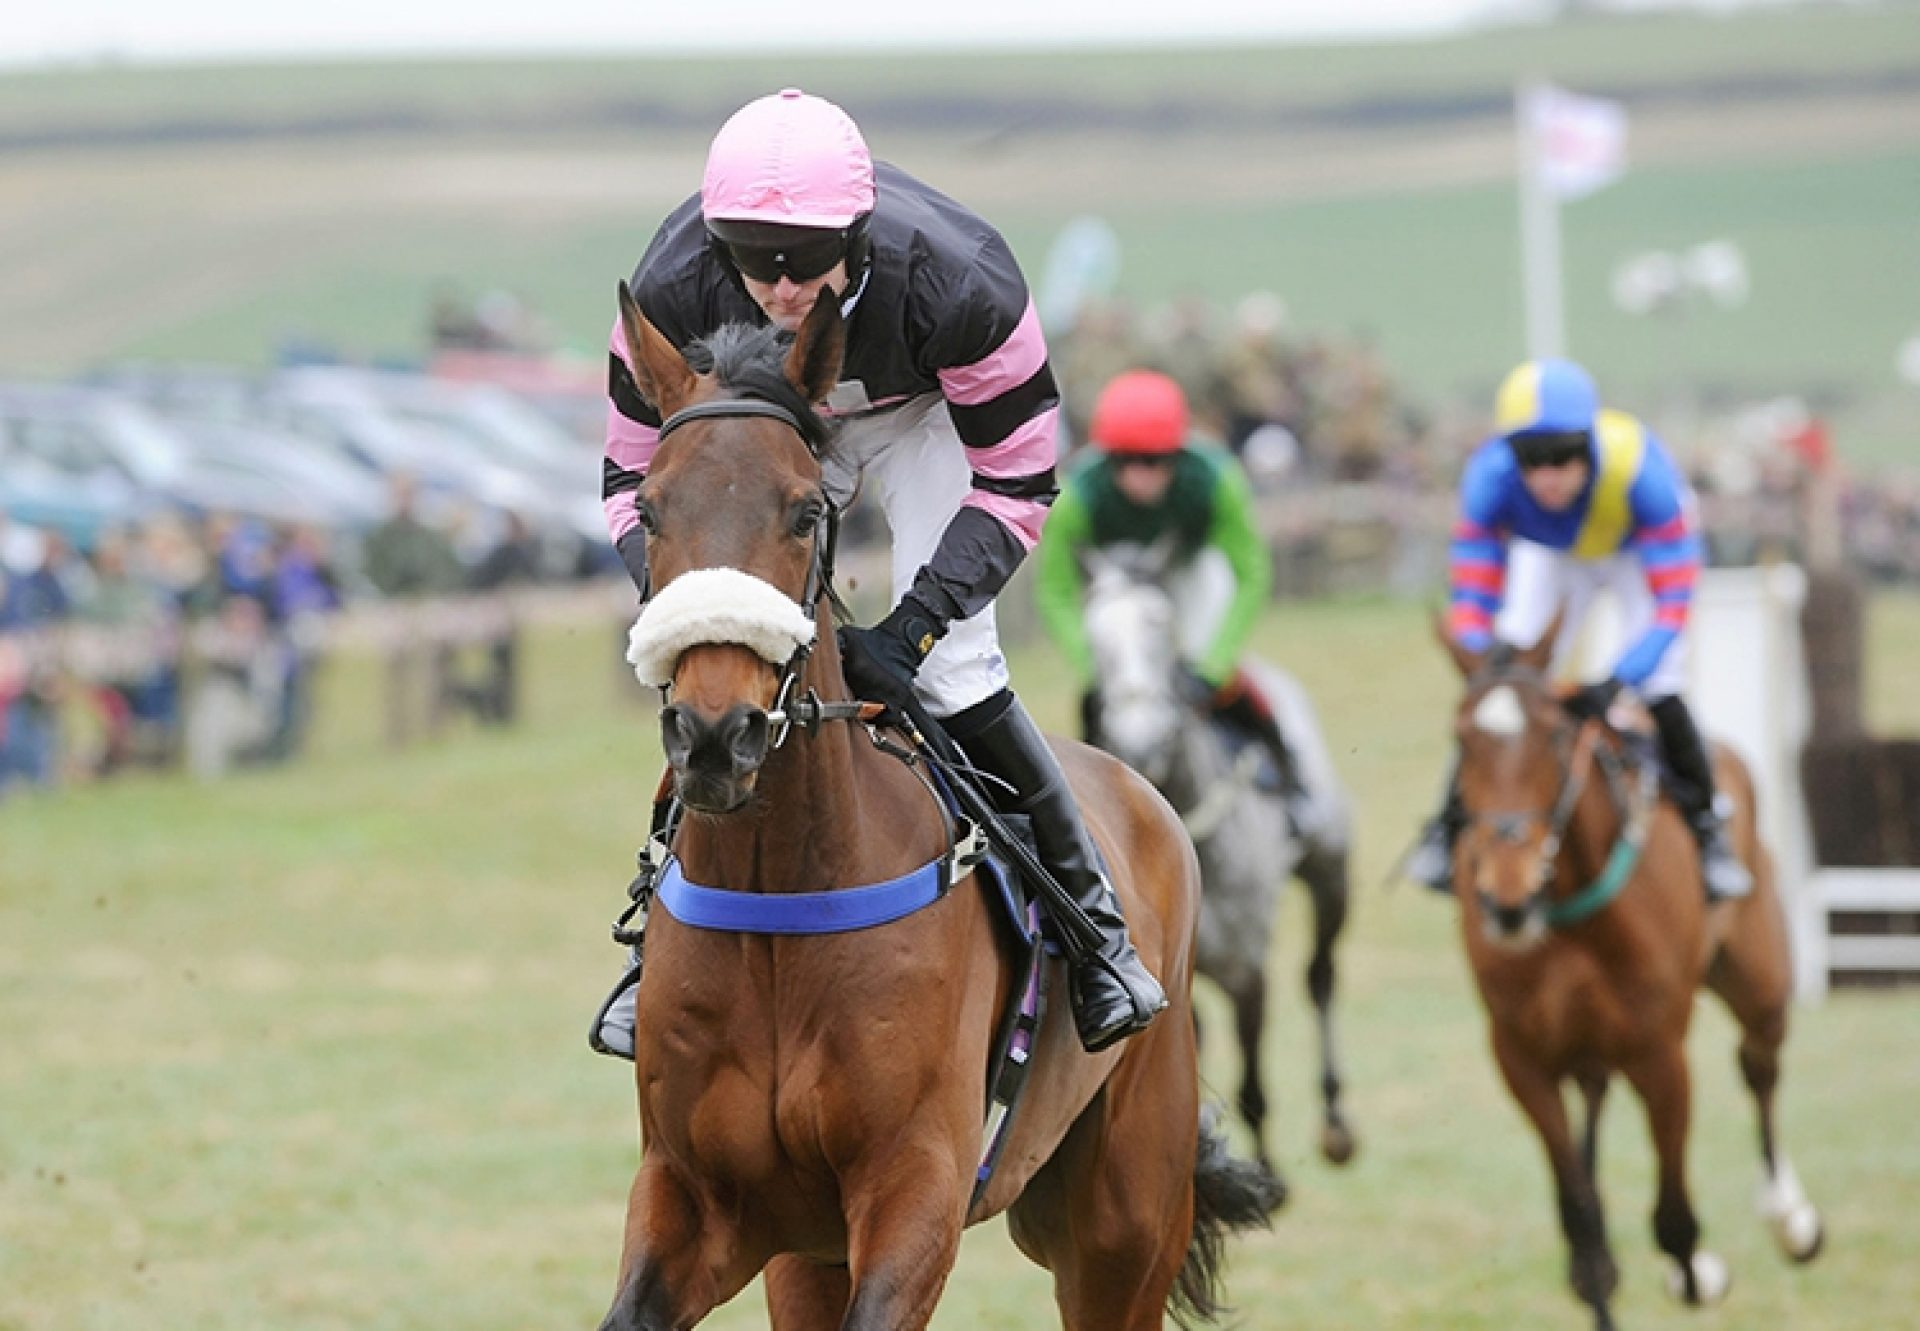 Agamemmon (Getaway) winning a point-to-point at Milbourne St Andrew